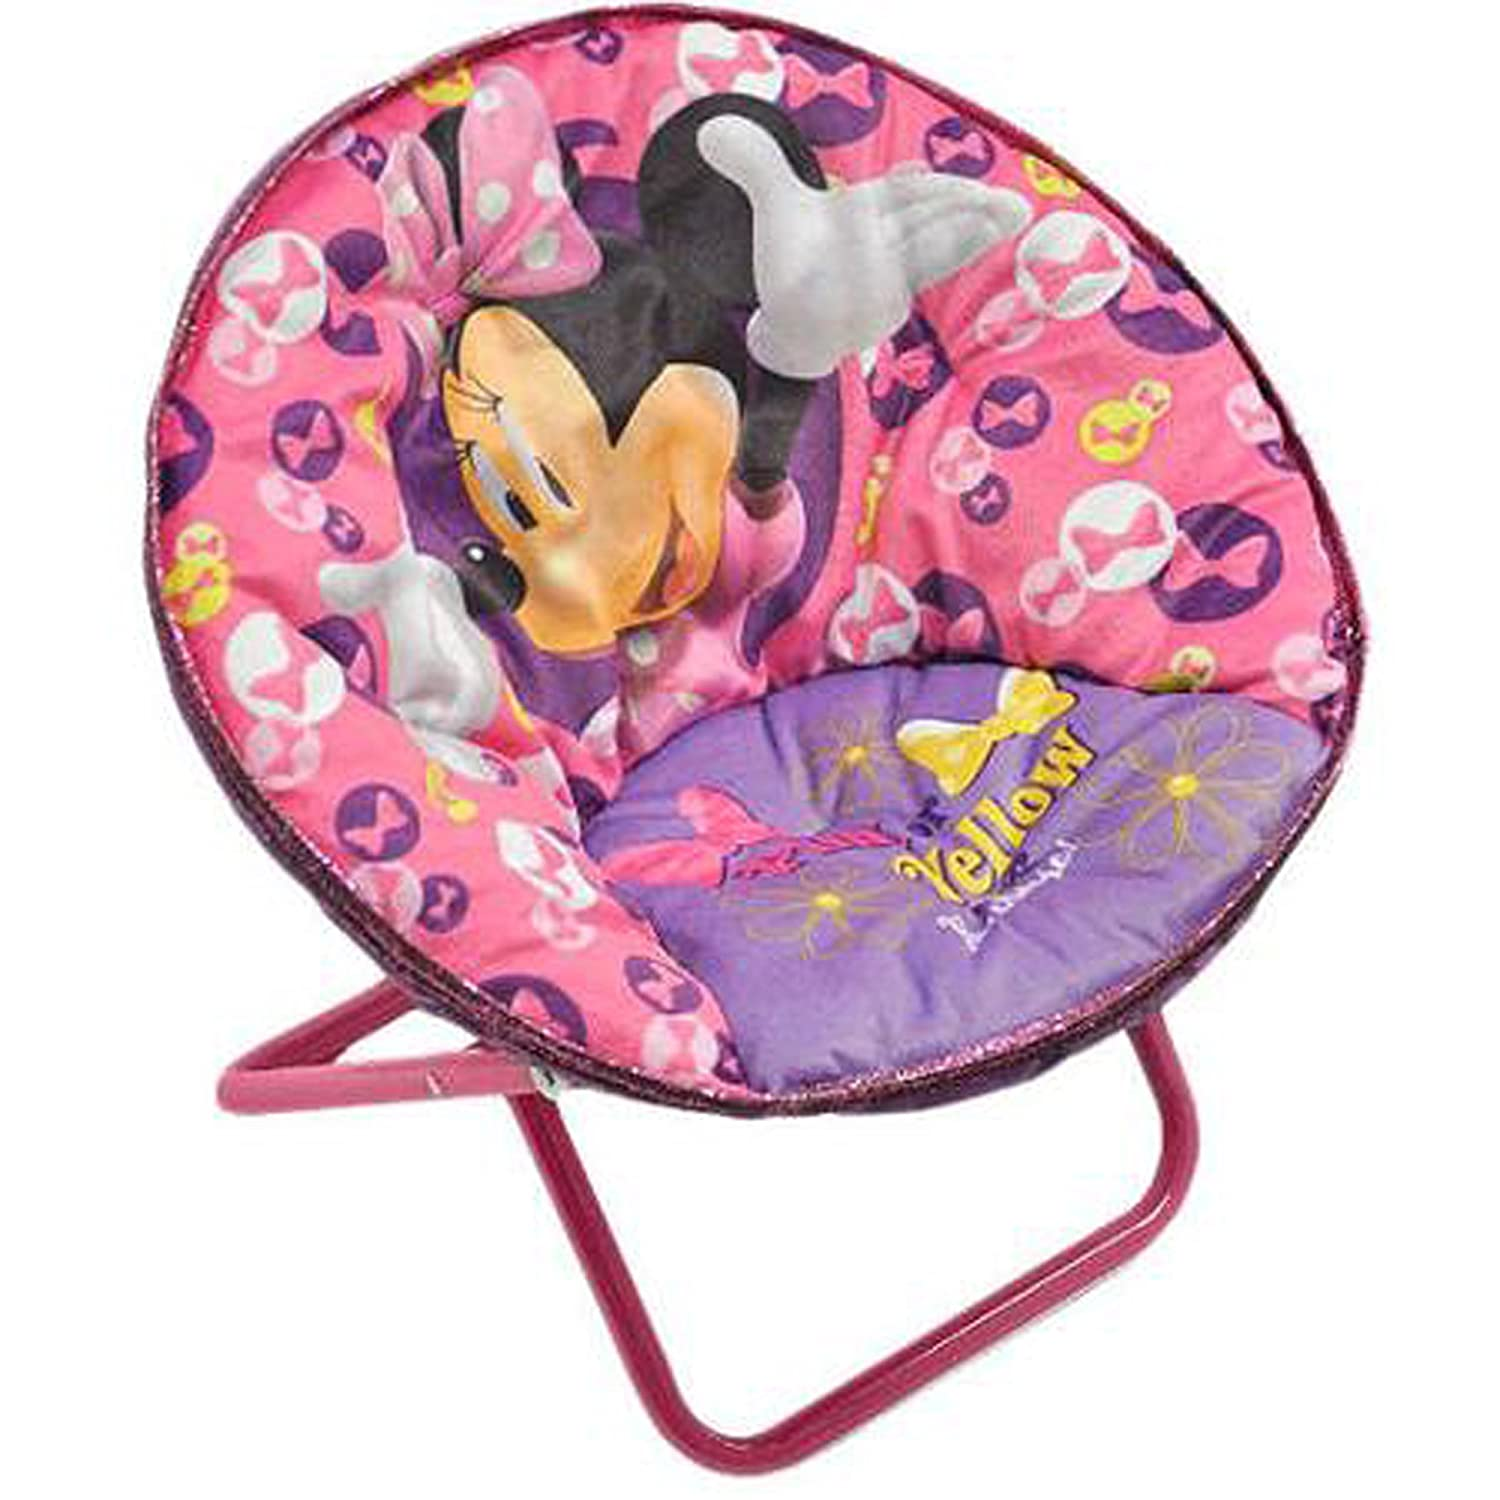 Minnie Mouse Disney Saucer Chair Pink Toddler Kids Seat Portable Character Comfortable Seating Saucer Shape Sturdy Metal Frame Polyester Cushioned Seat Playroom Easy Storage Bedroom Kitchen Dining Cjp Org In